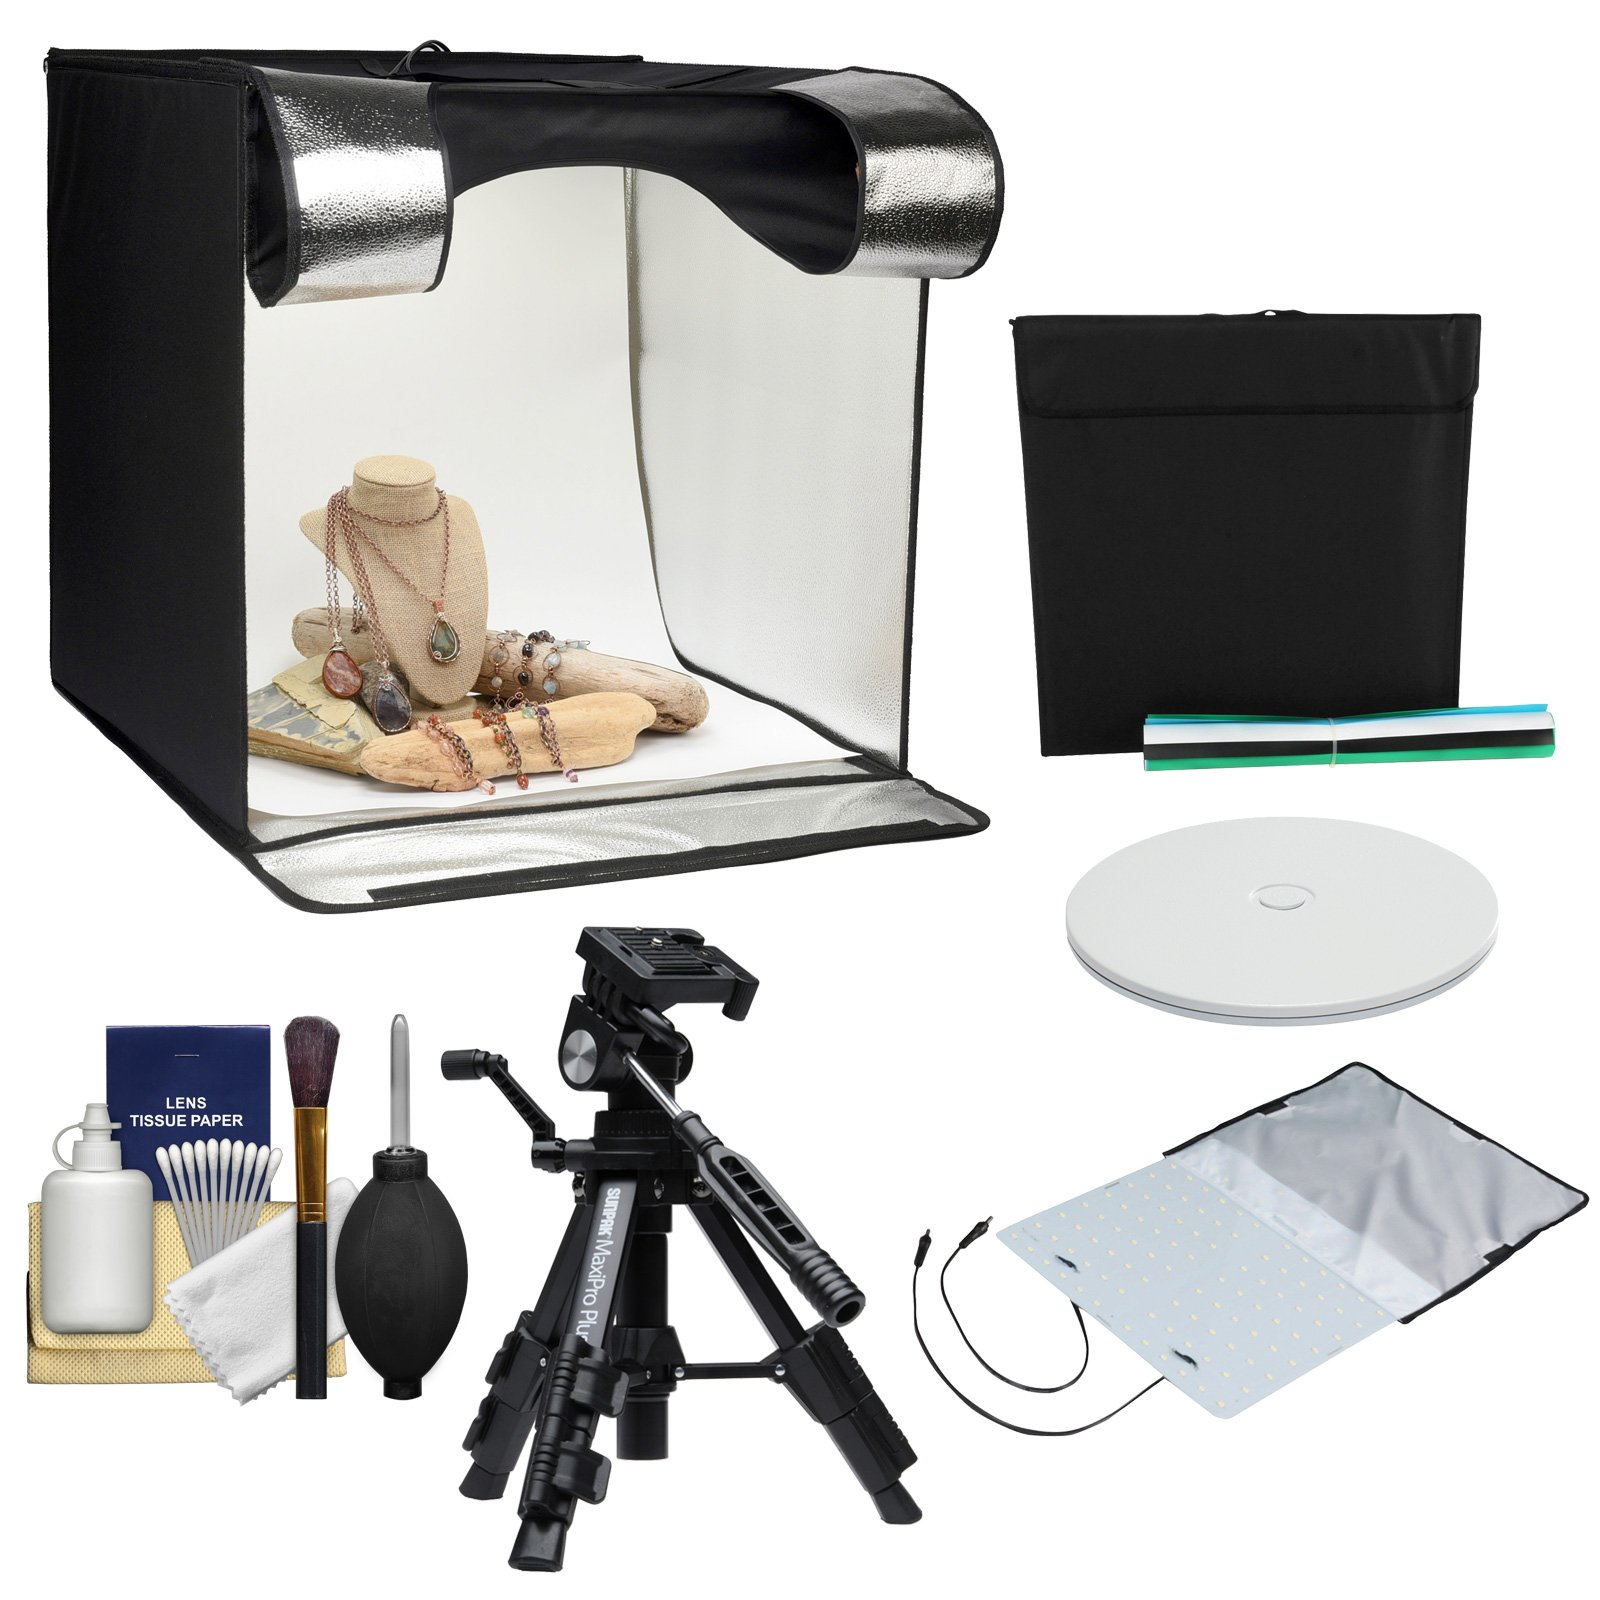 Smith-Victor 24'' Desktop LED Light Box Studio Tent with Turntable, 4 Backgrounds & Case with Macro Tripod + Cleaning Kit by Smith-Victor (Image #1)